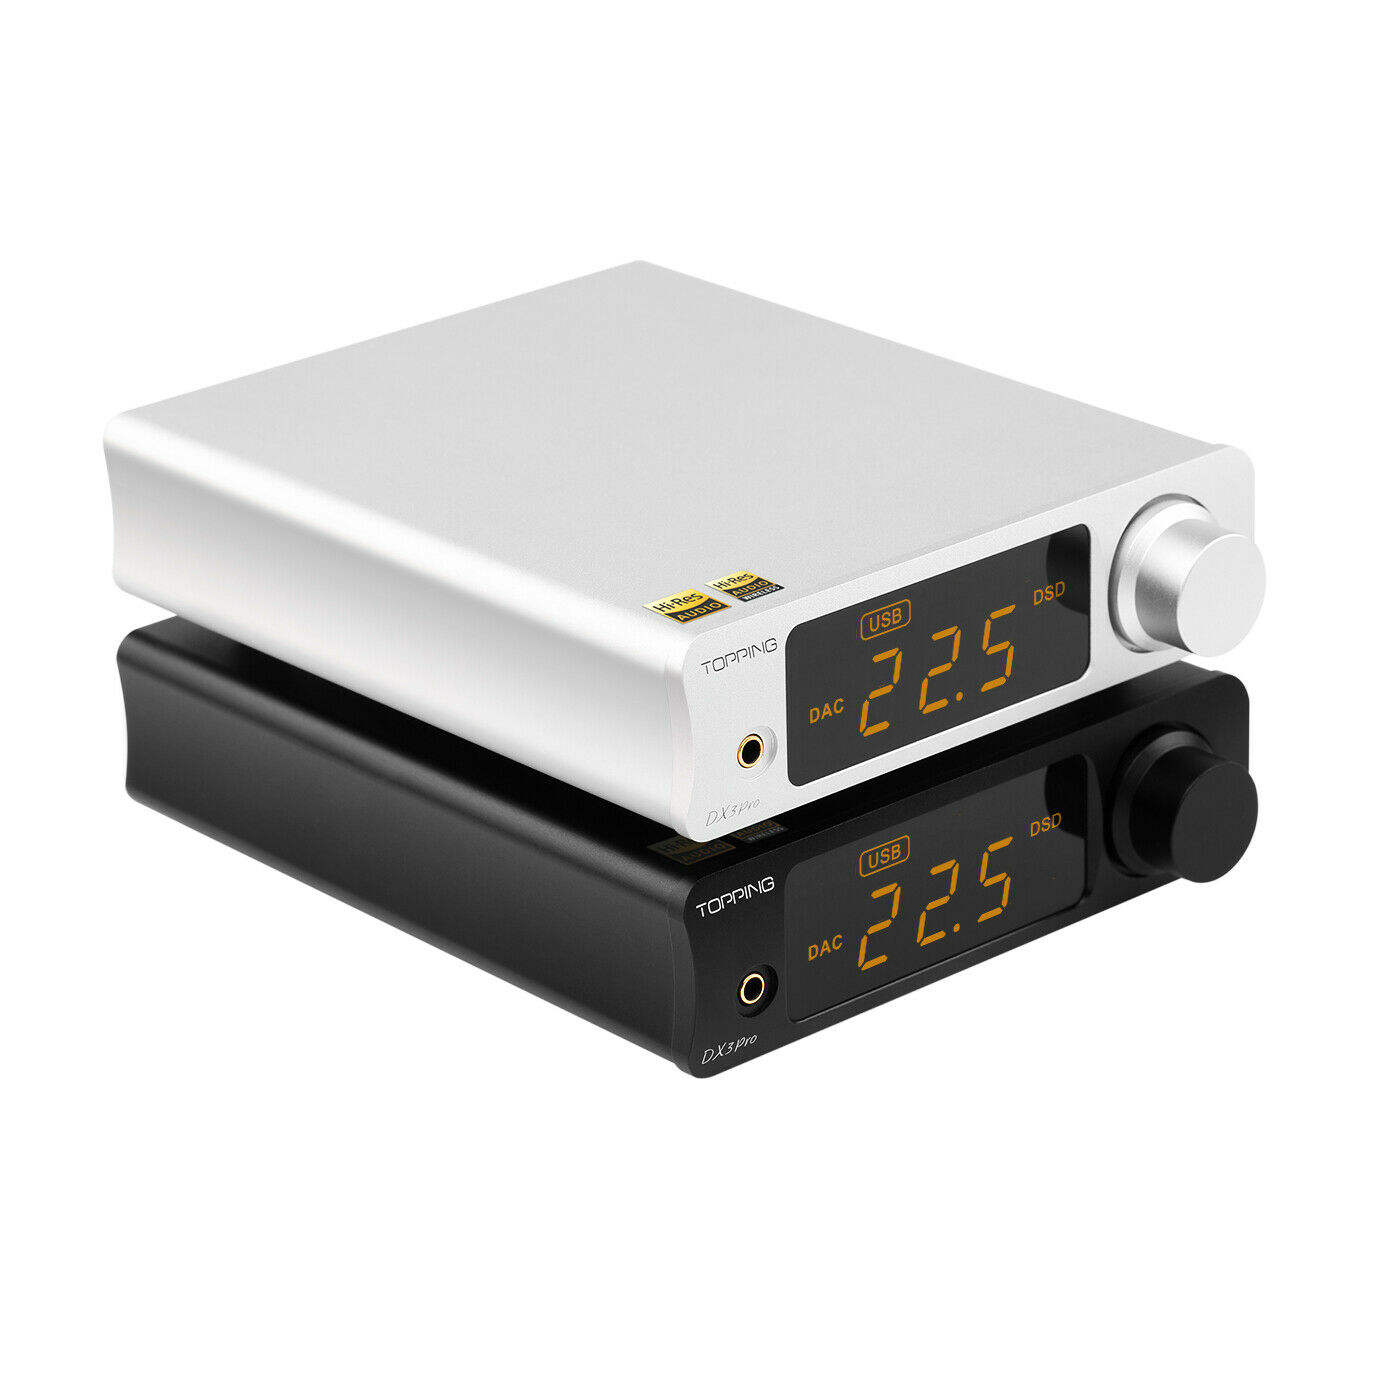 TOPPING DX3 Pro LDAC Amp AK4493 USB Bluetooth DAC Headphone Amplifier DSD512